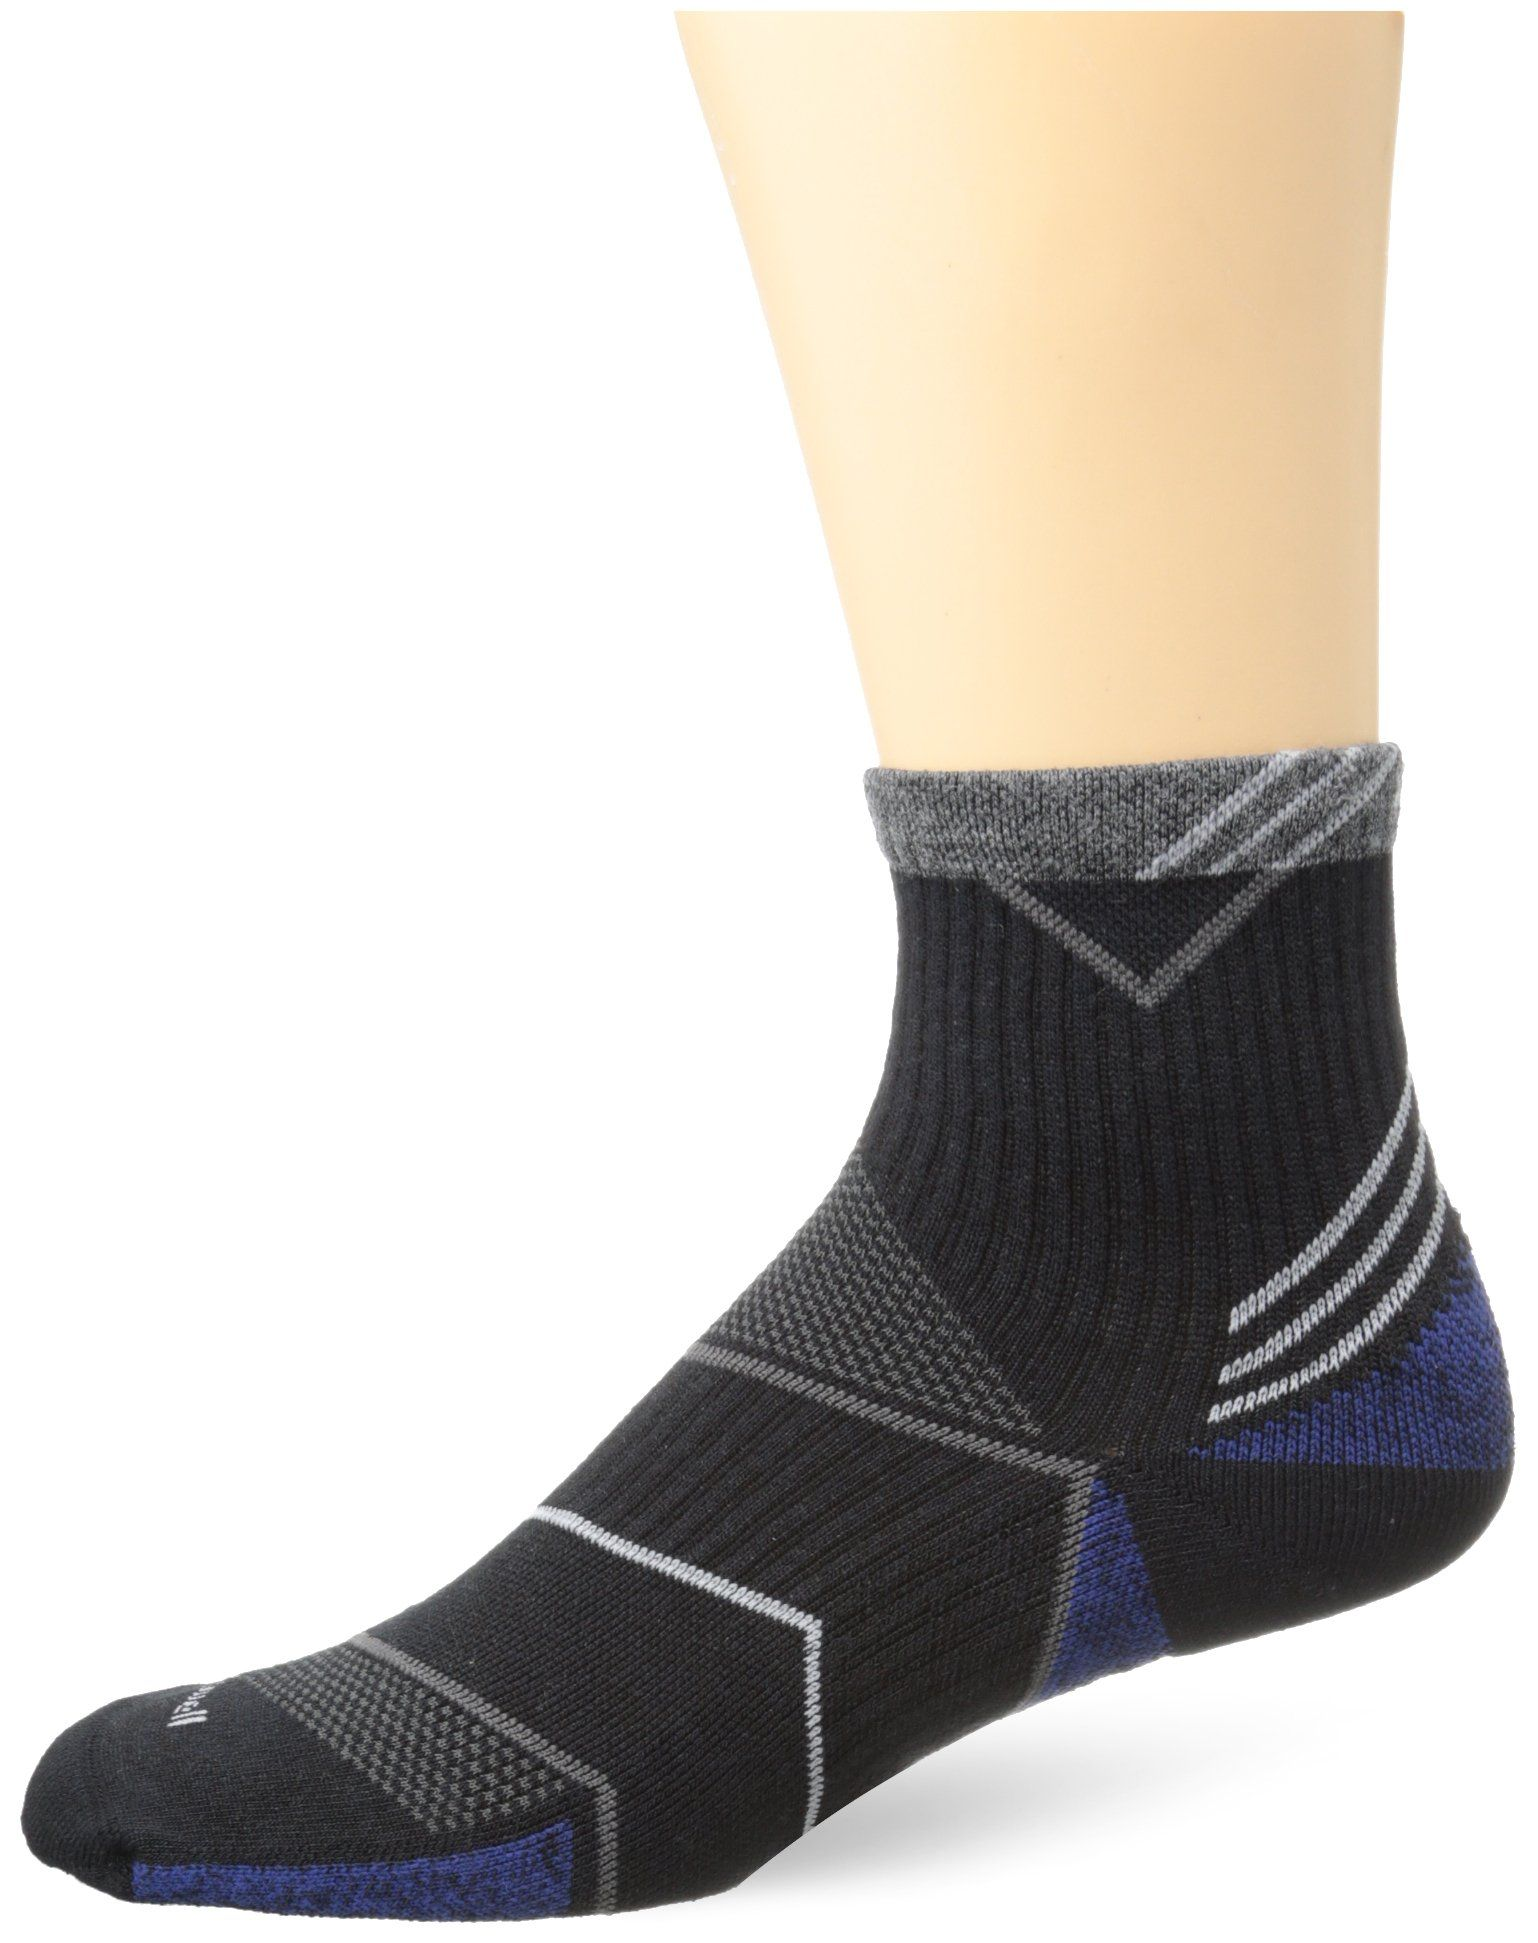 da2d9bf310f24 Sockwell Men's Incline Quarter Graduated Compression- Ideal for Running,  Sports and Fitness activities,